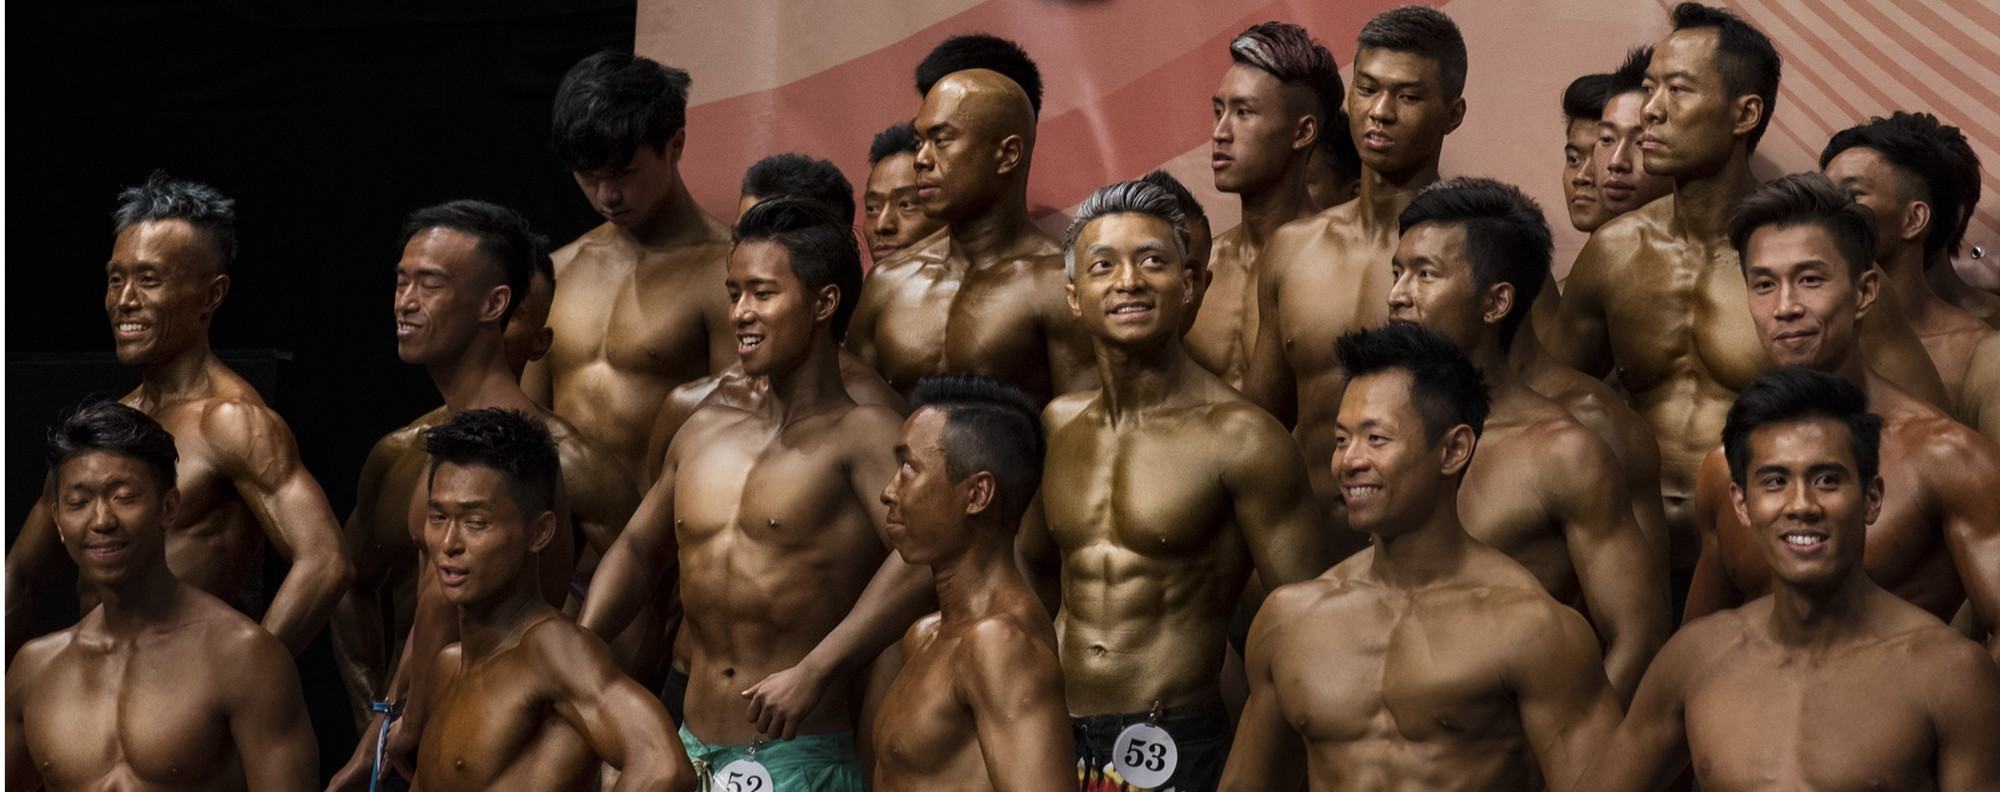 Participants in the 2016 Hong Kong Bodybuilding Championships. Picture: Miguel Candela